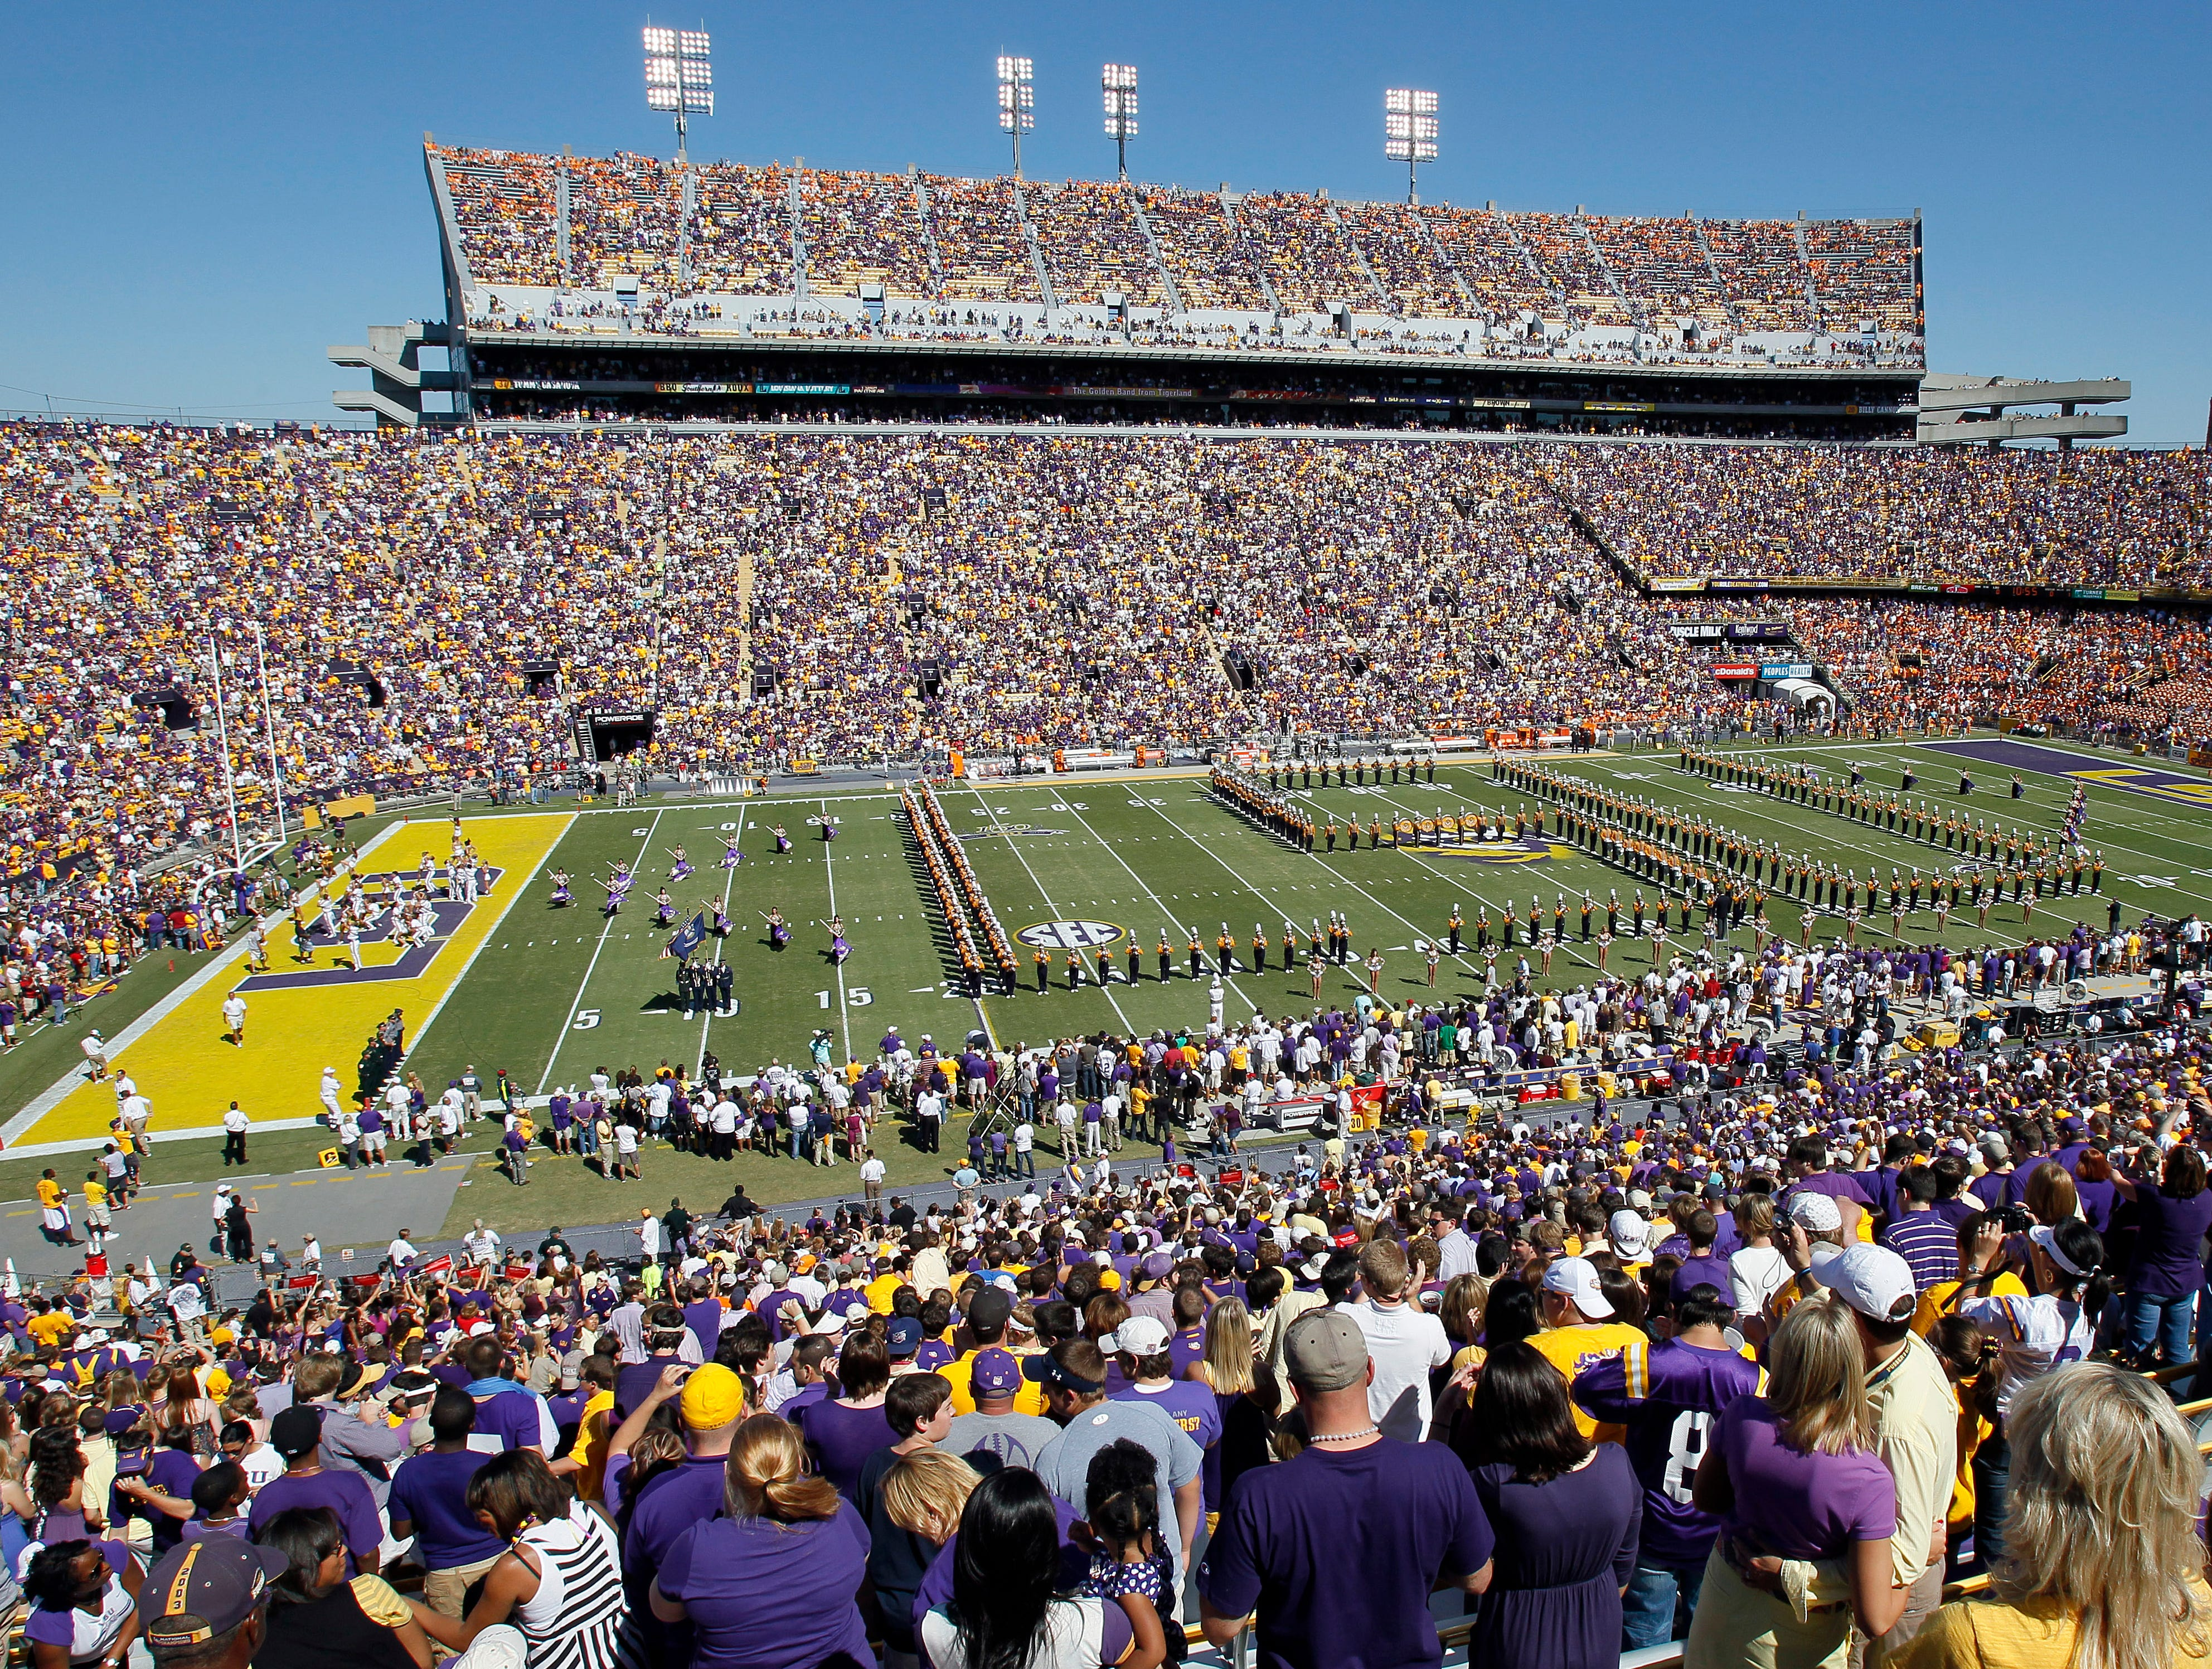 Tiger Stadium, LSU: Legend says in 1988 when the Tigers scored a game-winning touchdown in the final minute against Auburn, the rumble from the stadium caused the seismograph at the school to register an earthquake.